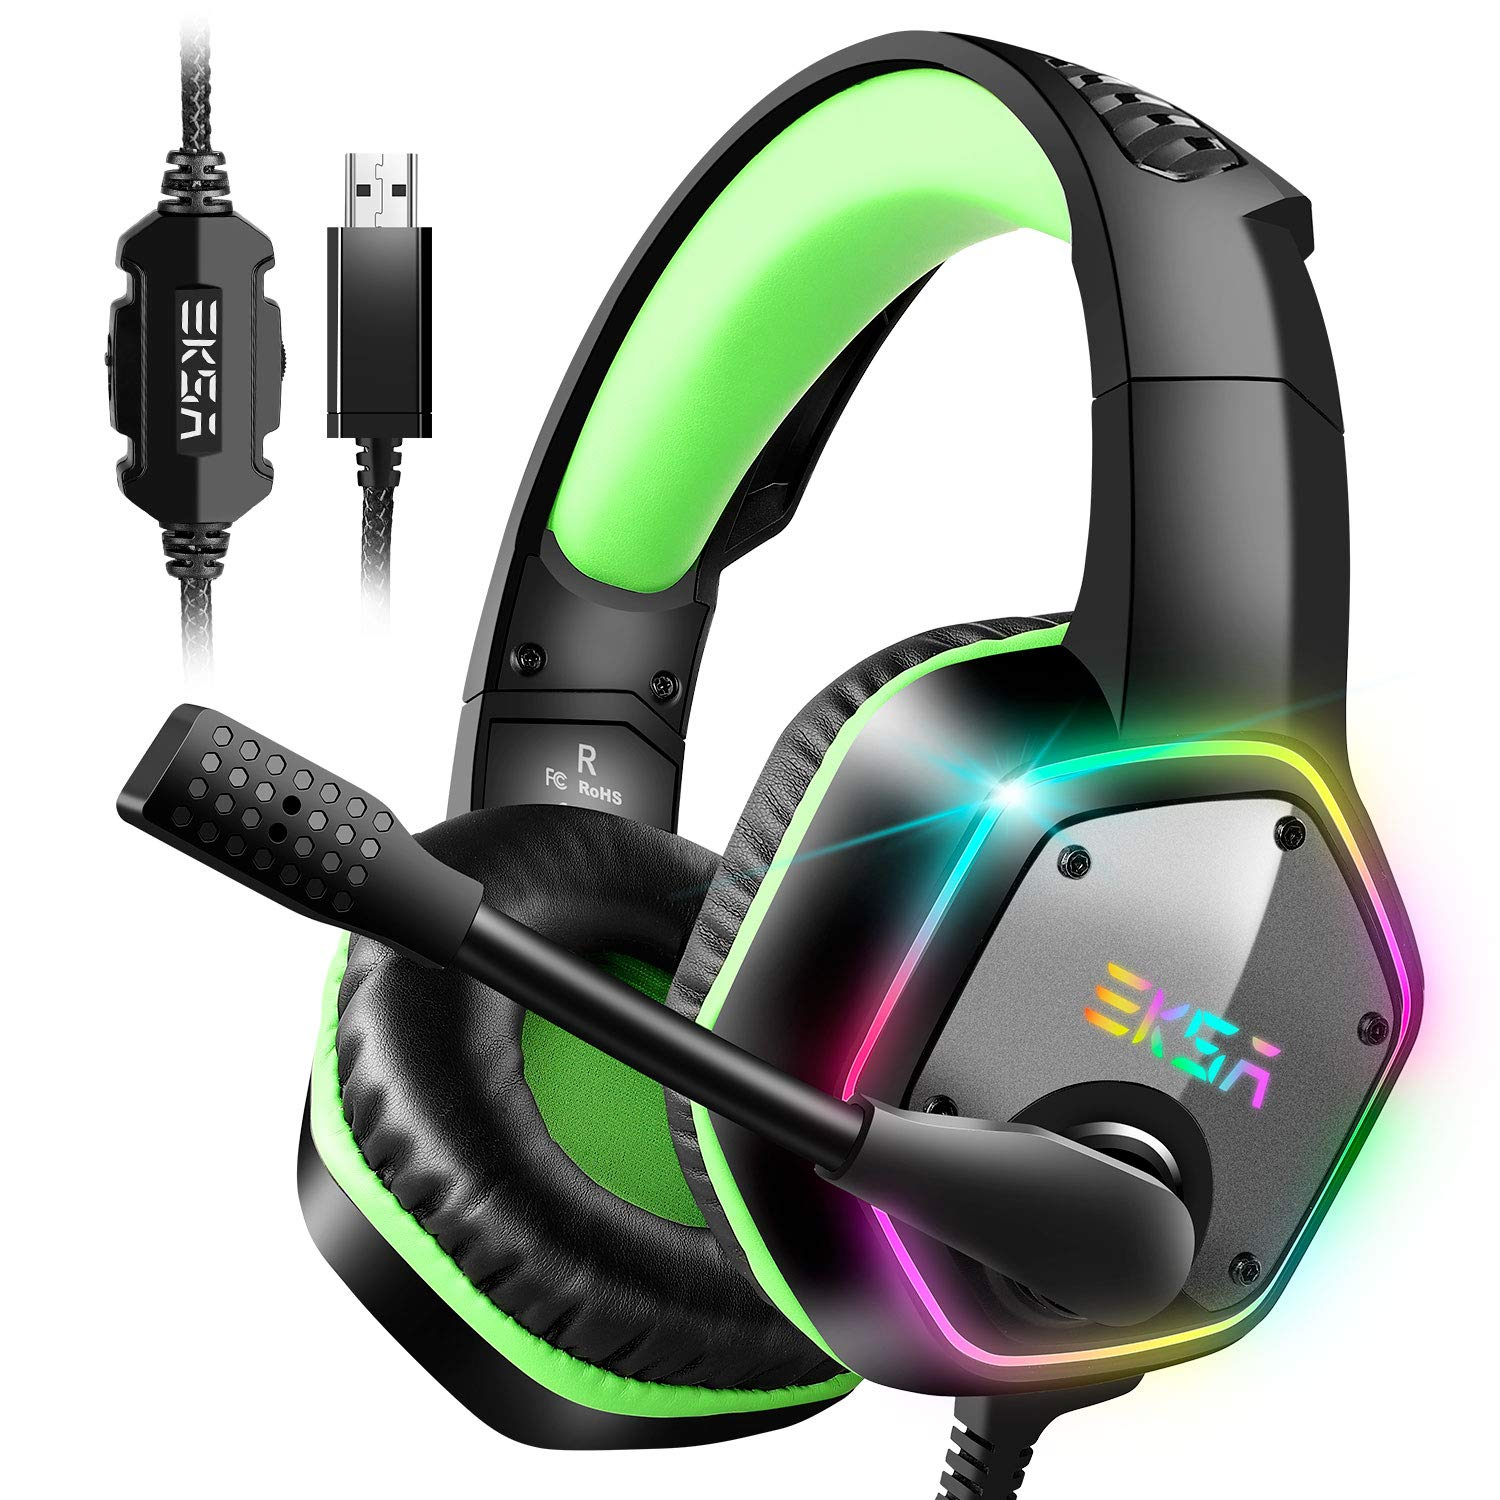 EKSA 7.1 Gaming Headset – Surround Stereo Sound – PS4 USB Headphones with Noise Canceling Mic RGB Light Over Ear Headphones, Compatible with PC, PS4 Console, Laptop Green